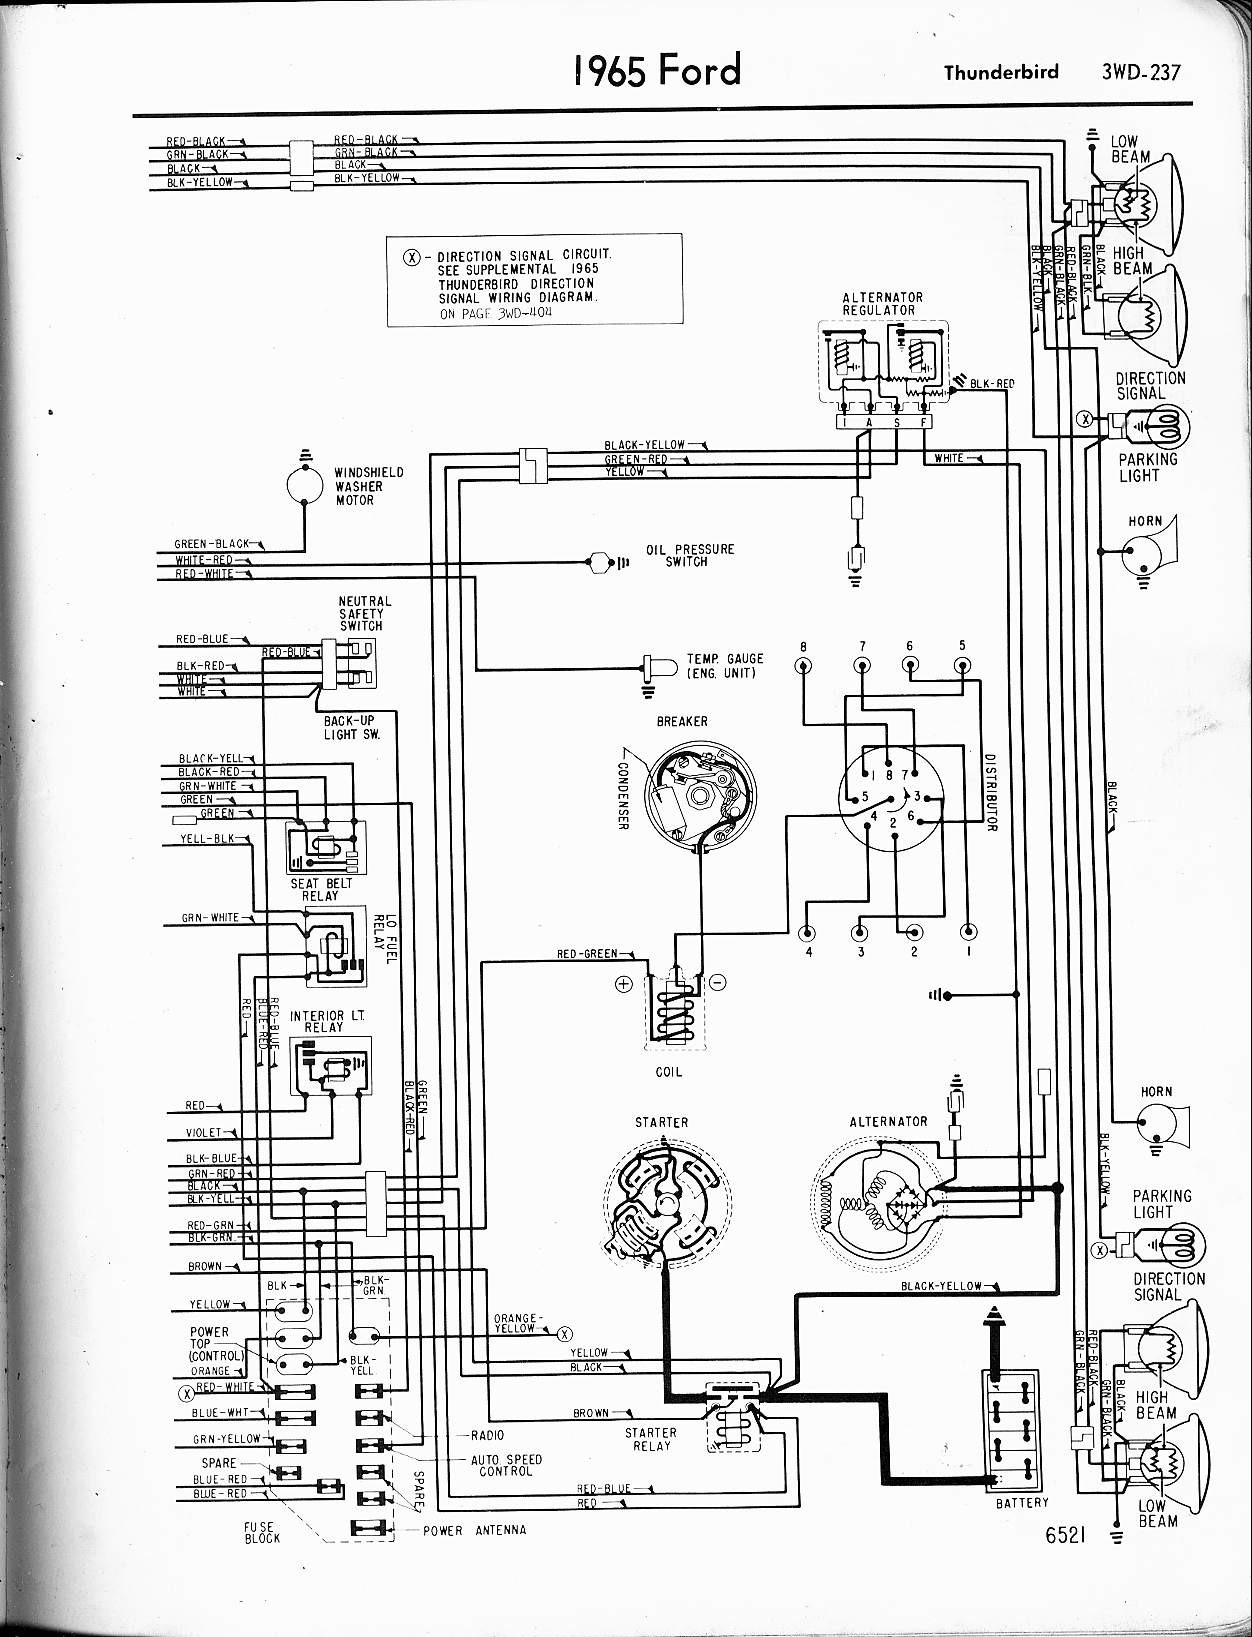 2006 Dodge Charger Engine Diagram Charger Circuit Breaker Diagram Free Download Wiring Diagram Of 2006 Dodge Charger Engine Diagram